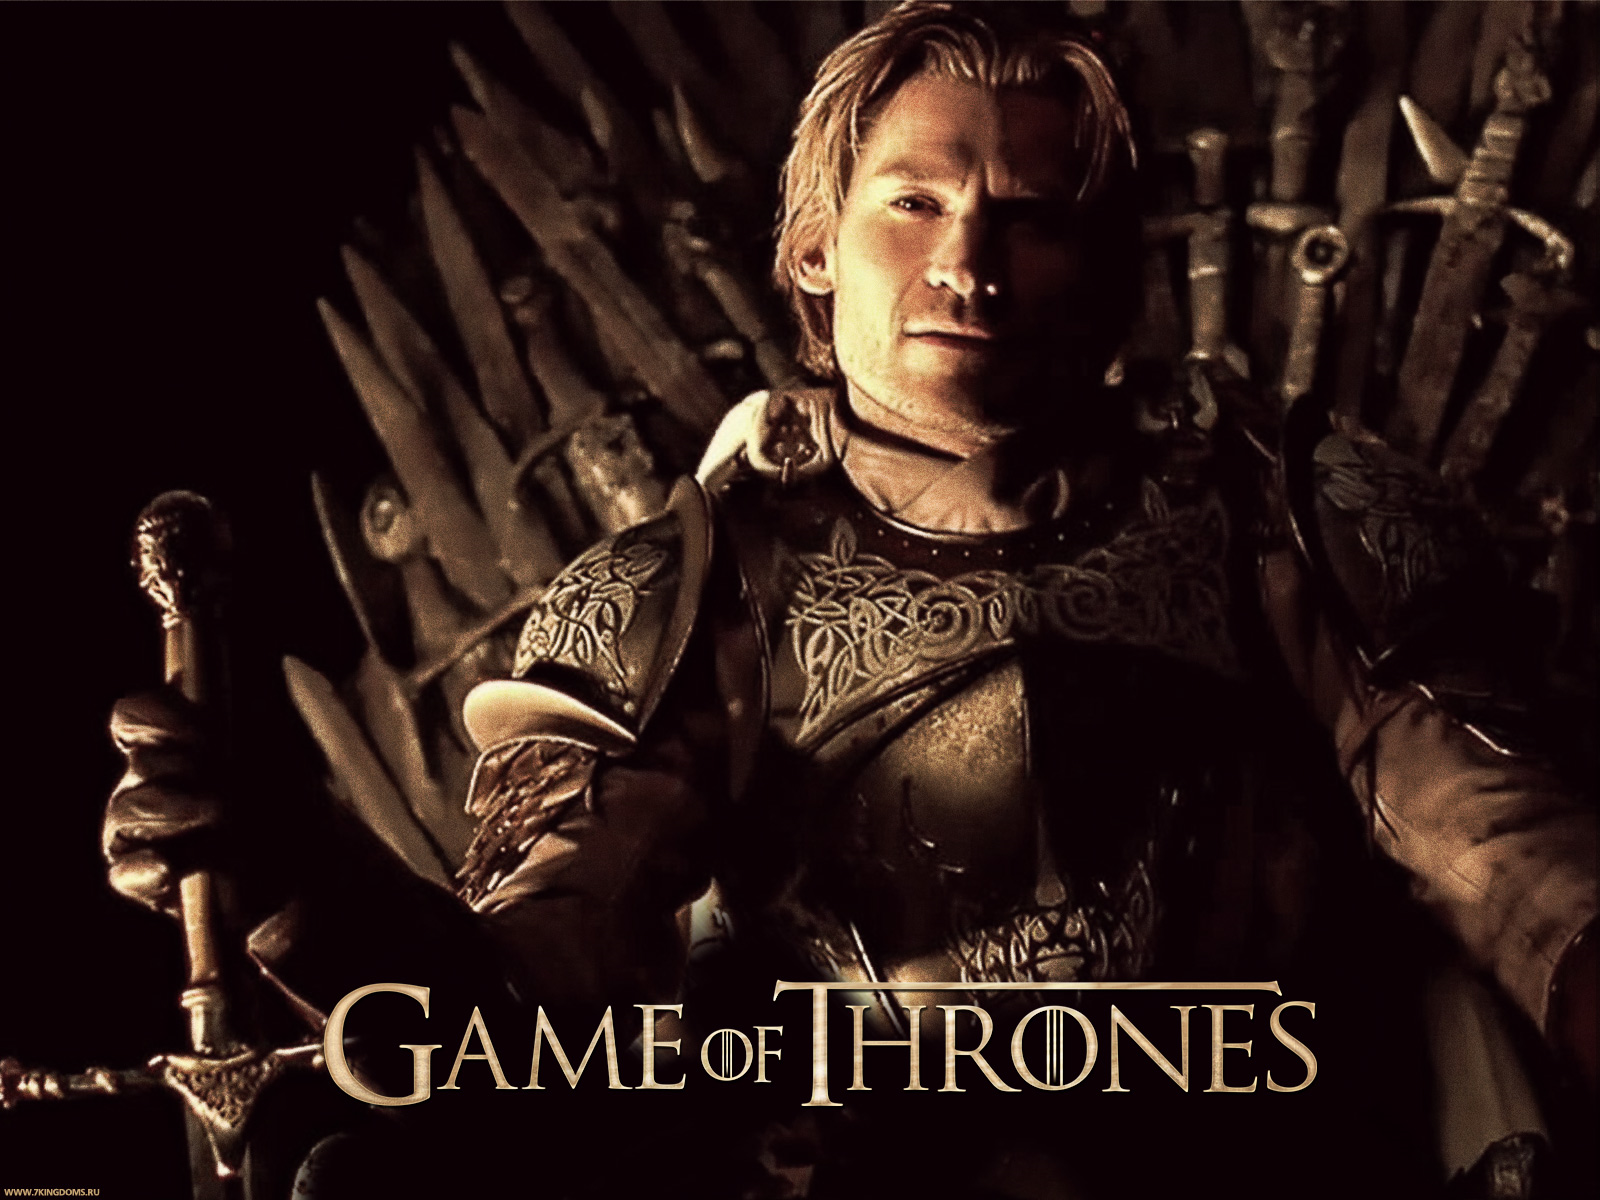 Game of Thrones Posters | Tv Series Posters and Cast